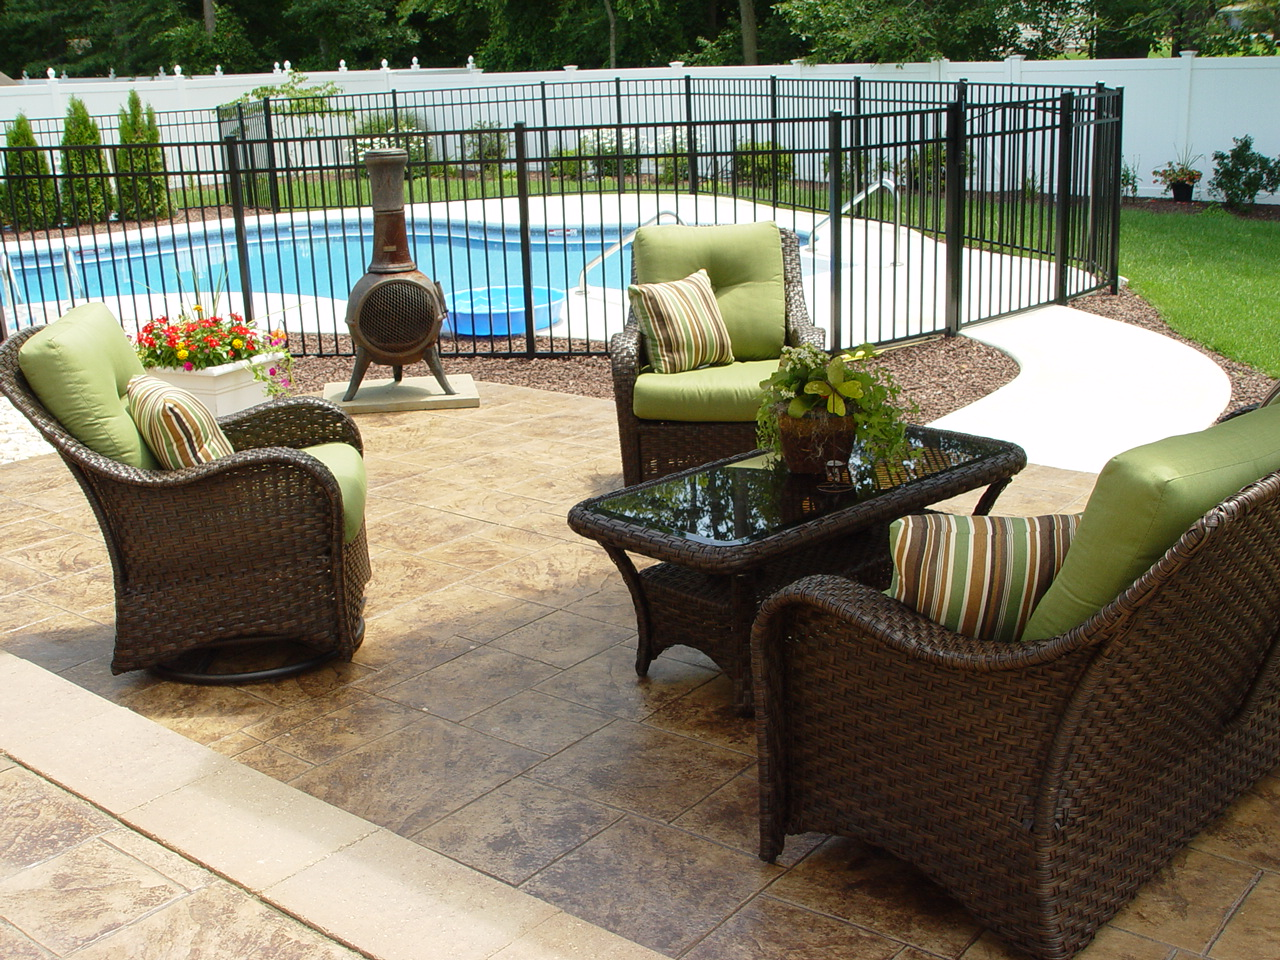 patio design ideas concrete patio morganville nj 07751 patio driveways 29810